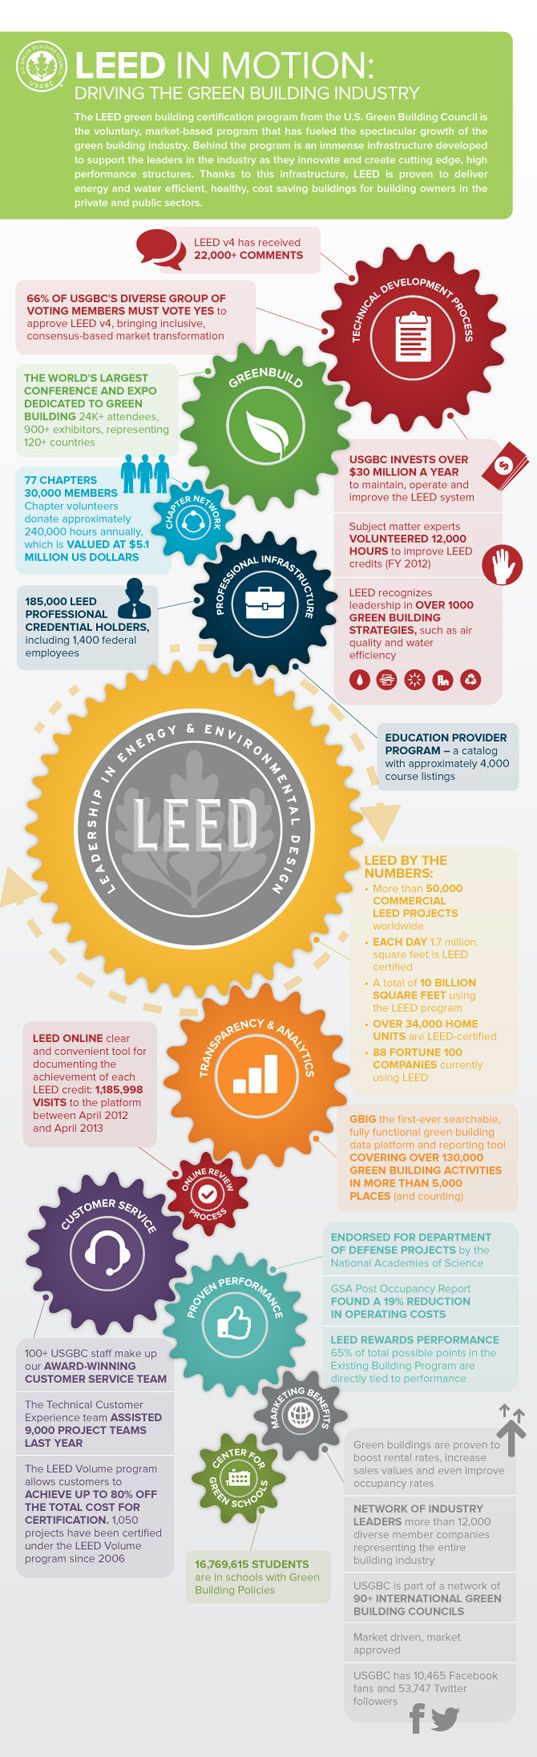 25 Best Ideas About Leed Certification On Pinterest